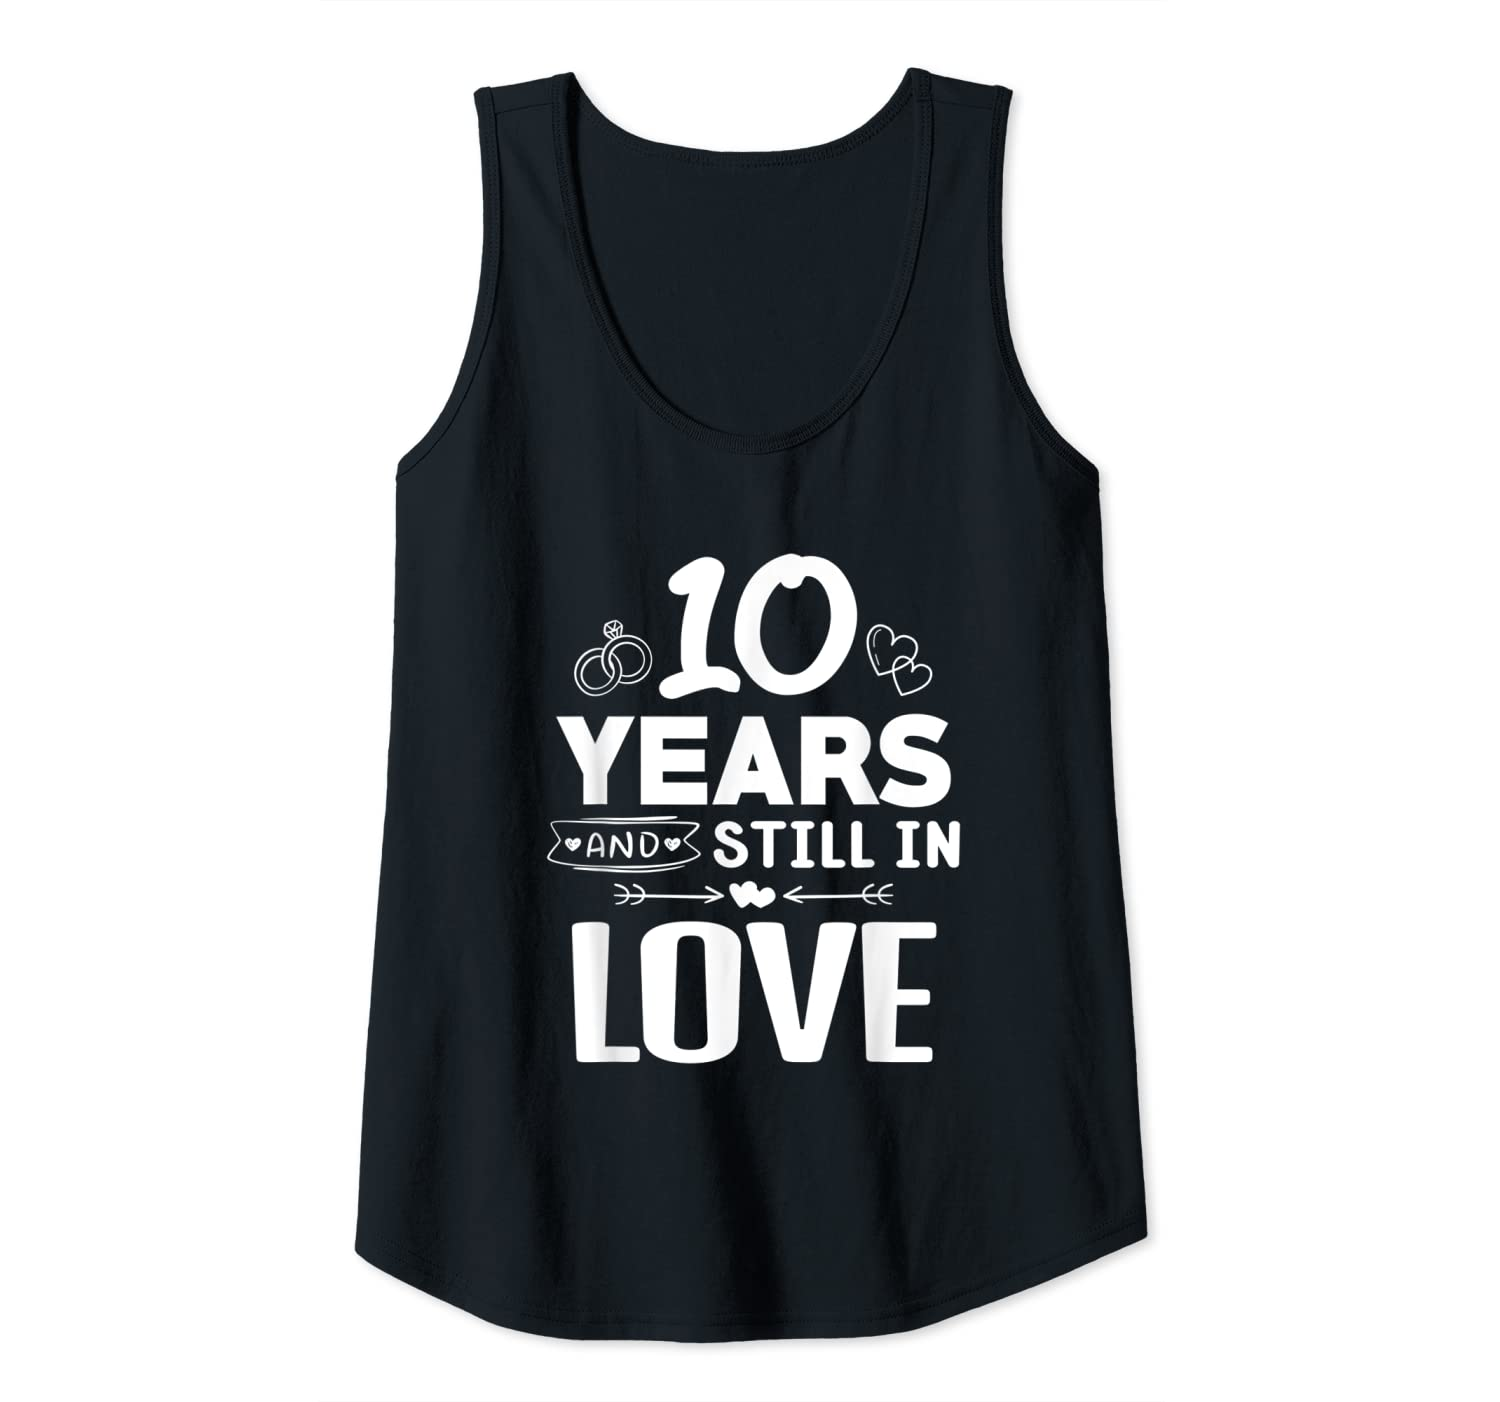 10th Wedding Anniversary Gift For Husband: Happy 10th Wedding Anniversary Gift For Husband Wife Flowy